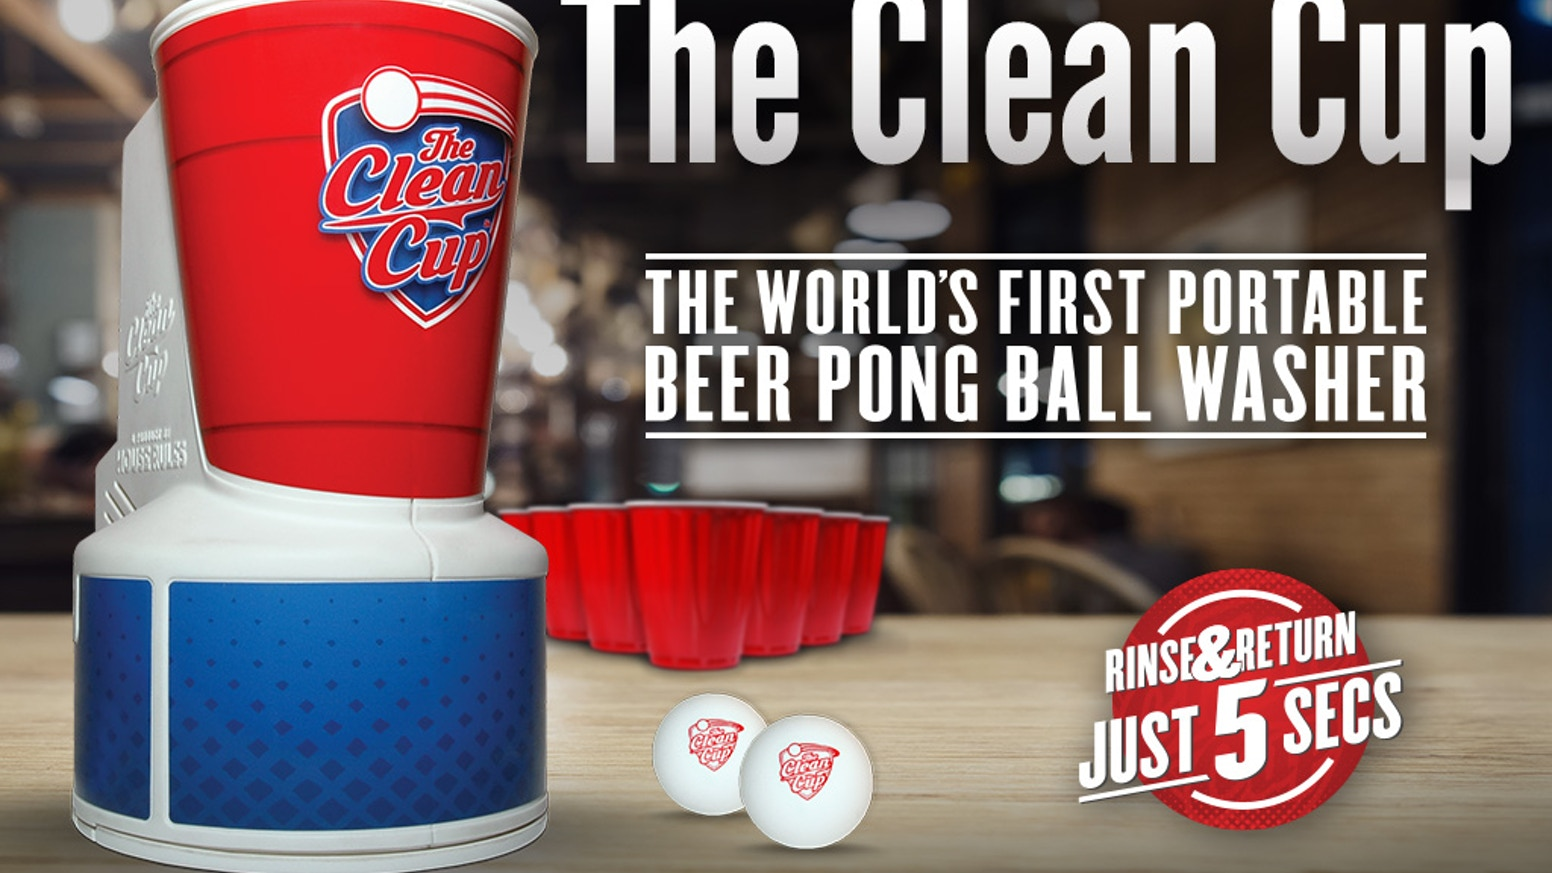 With a quick rinse and return, The Clean Cup™ leaves your beer pong balls free of hairs and dirt. Rinsed and ready for your next turn.